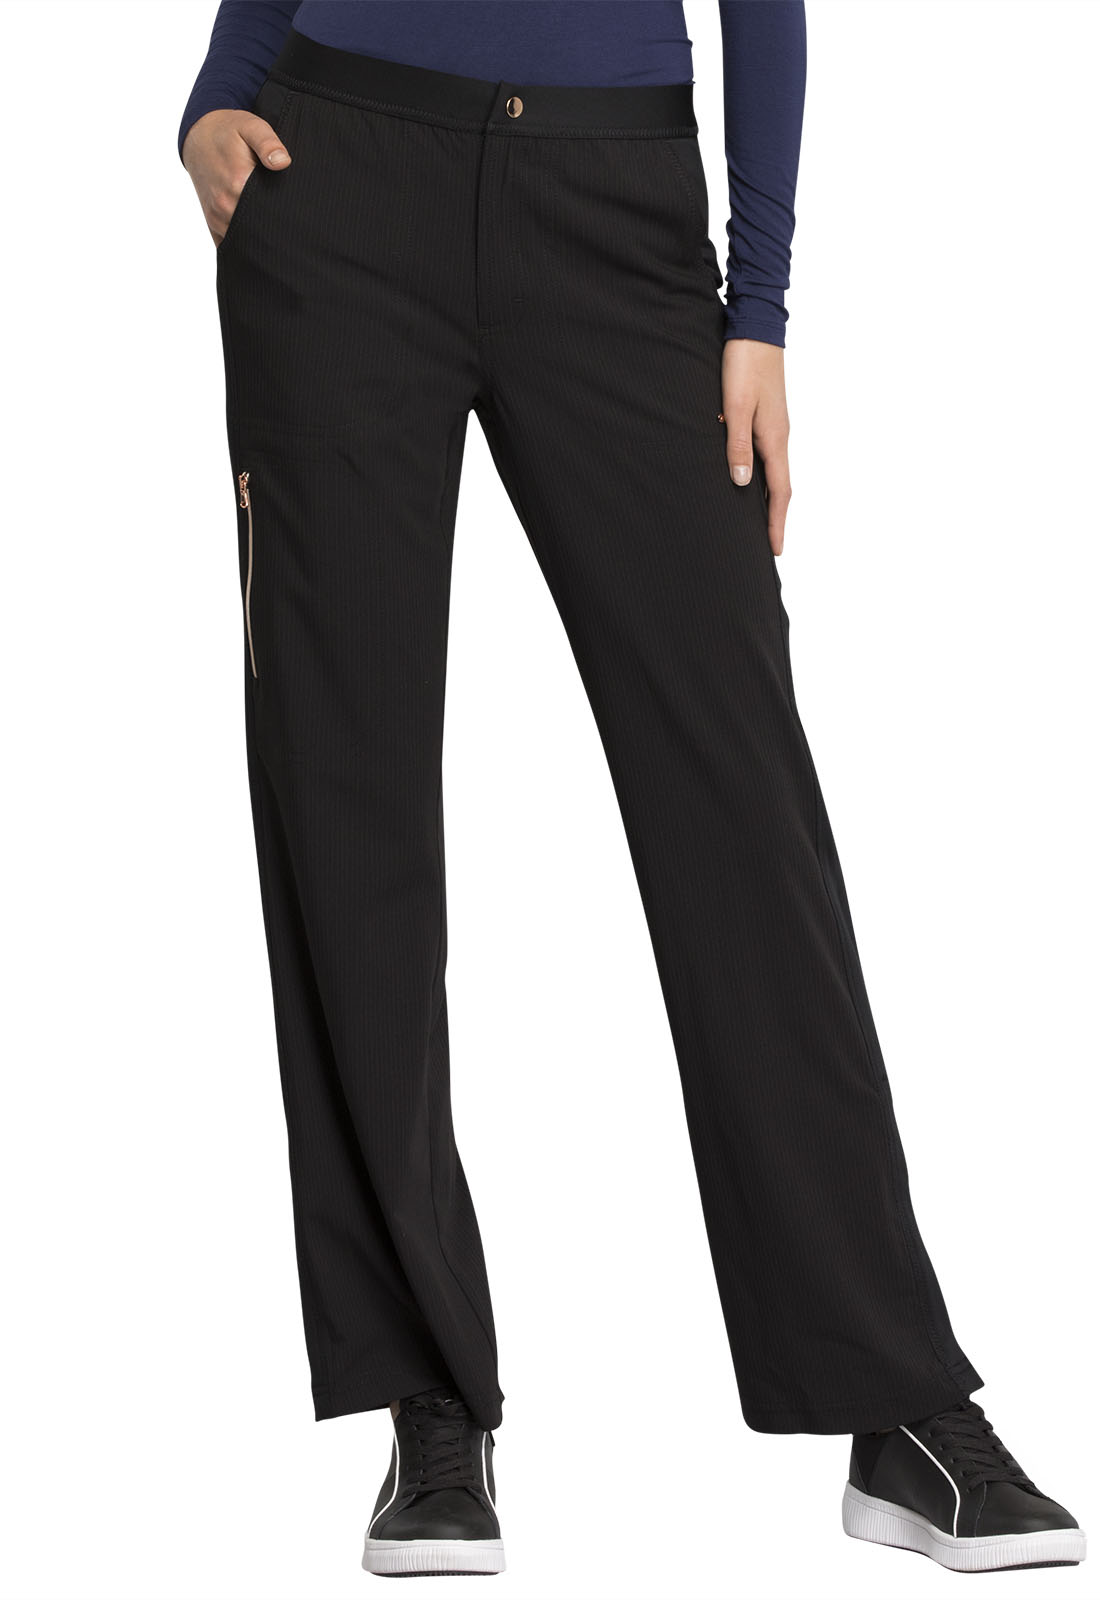 bfd9a3a3ea4c1 Statement Natural Rise Flare Leg Pant in Black CK060-BLK from AAA ...